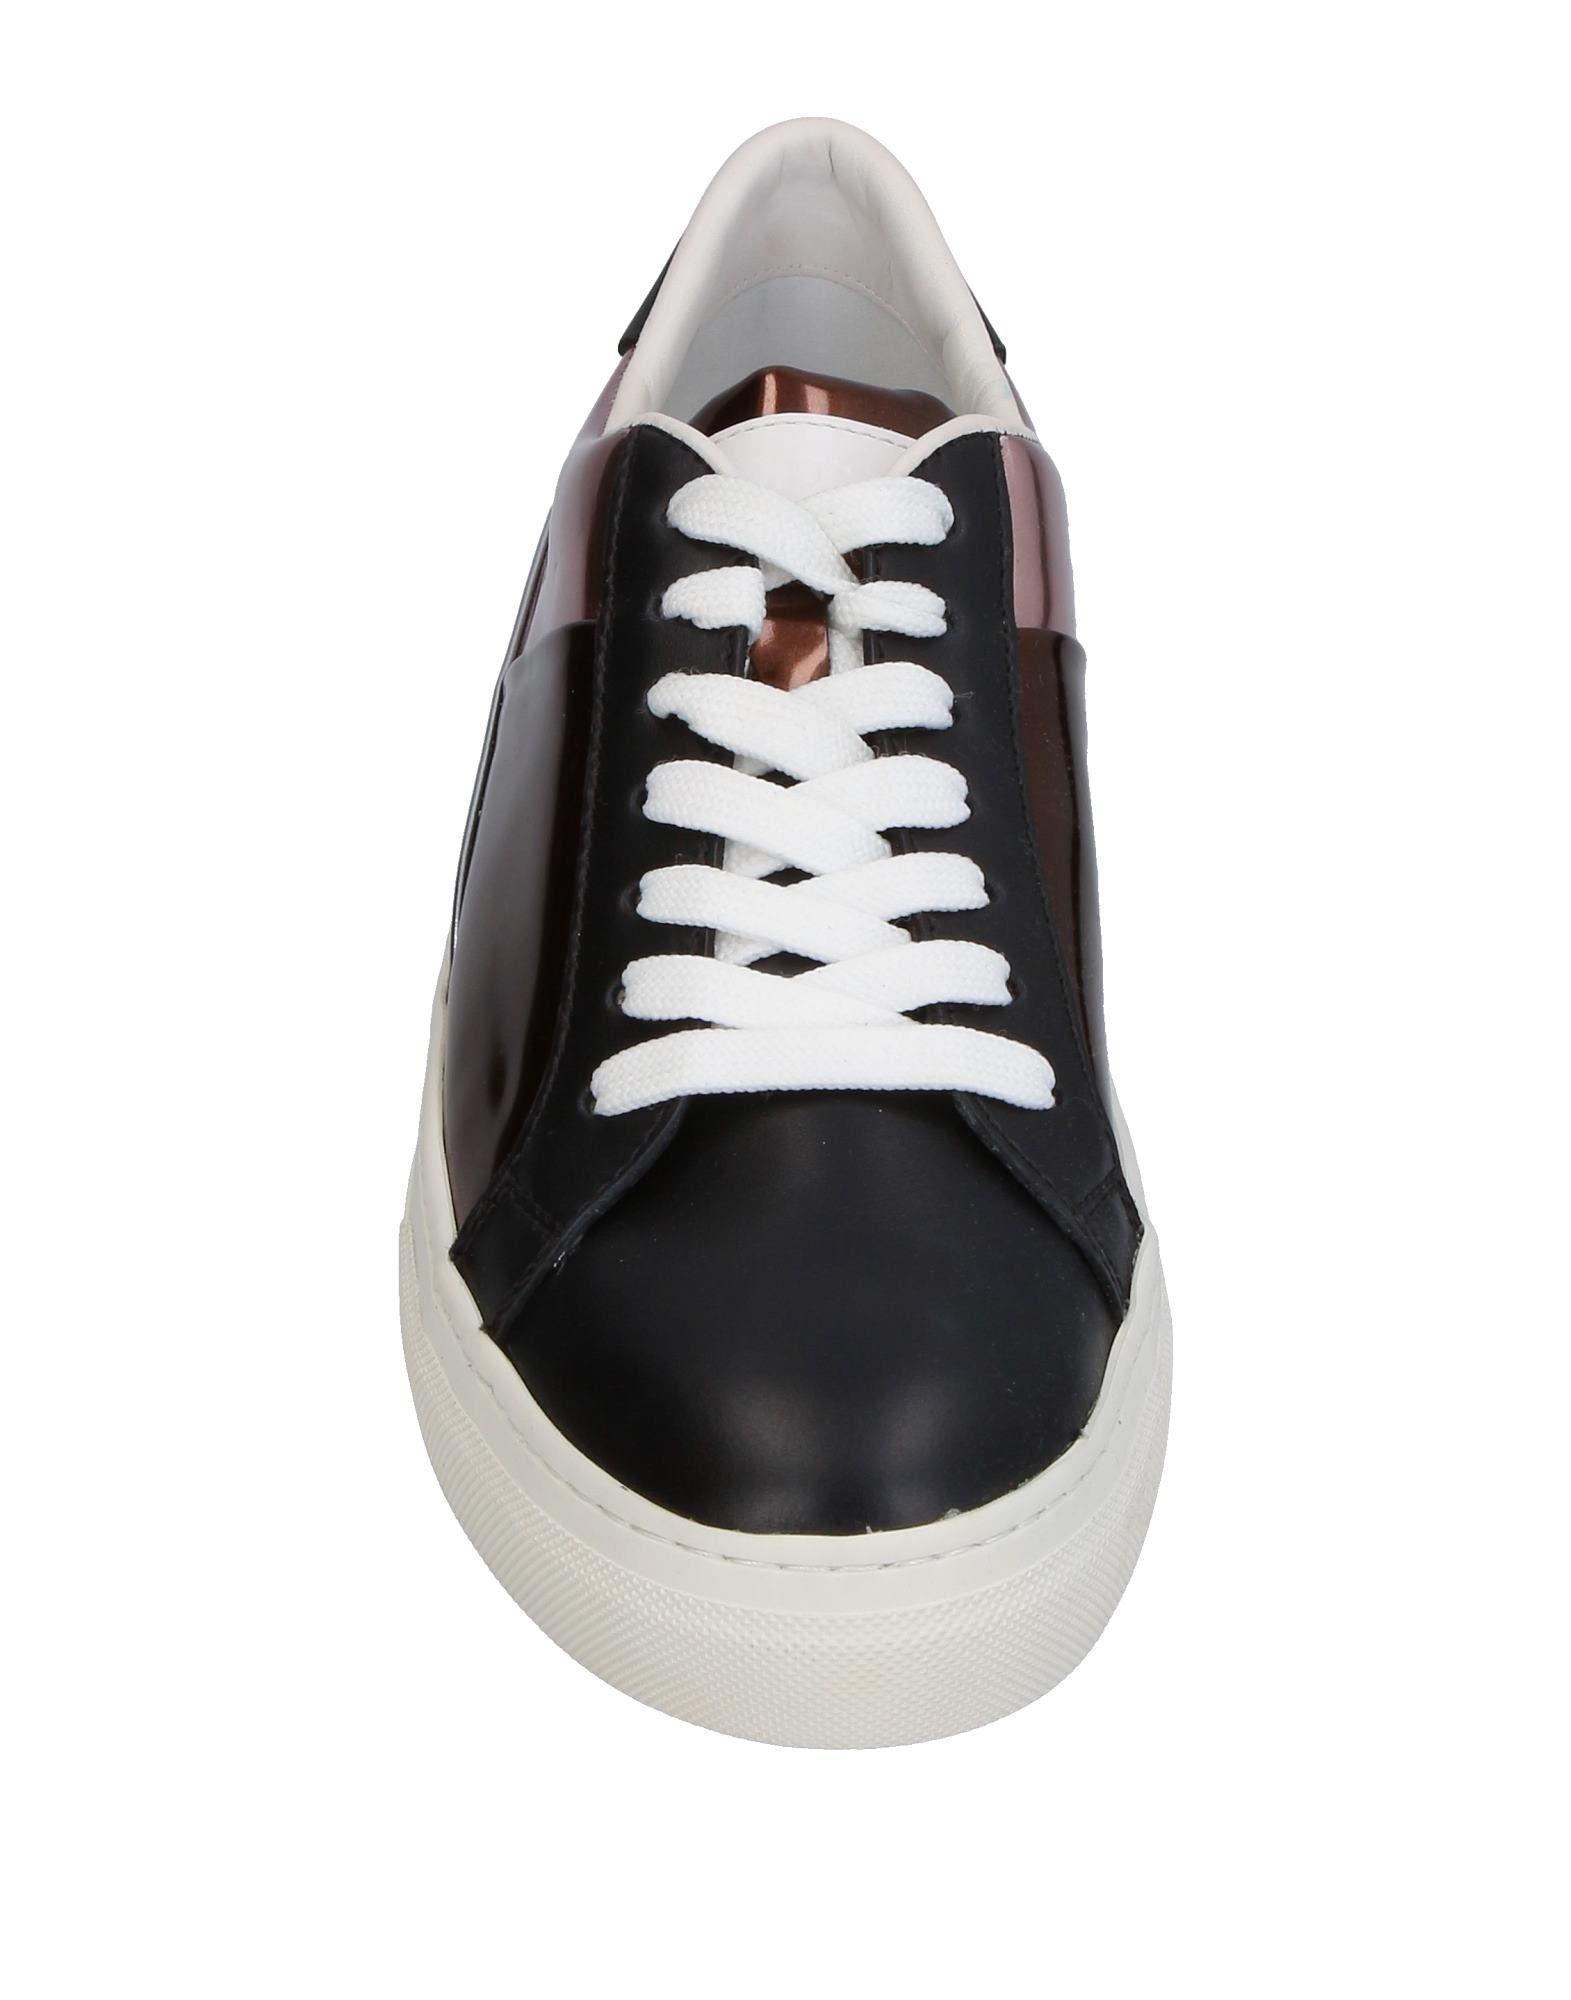 Sneakers Tods Femme - Sneakers Tods sur